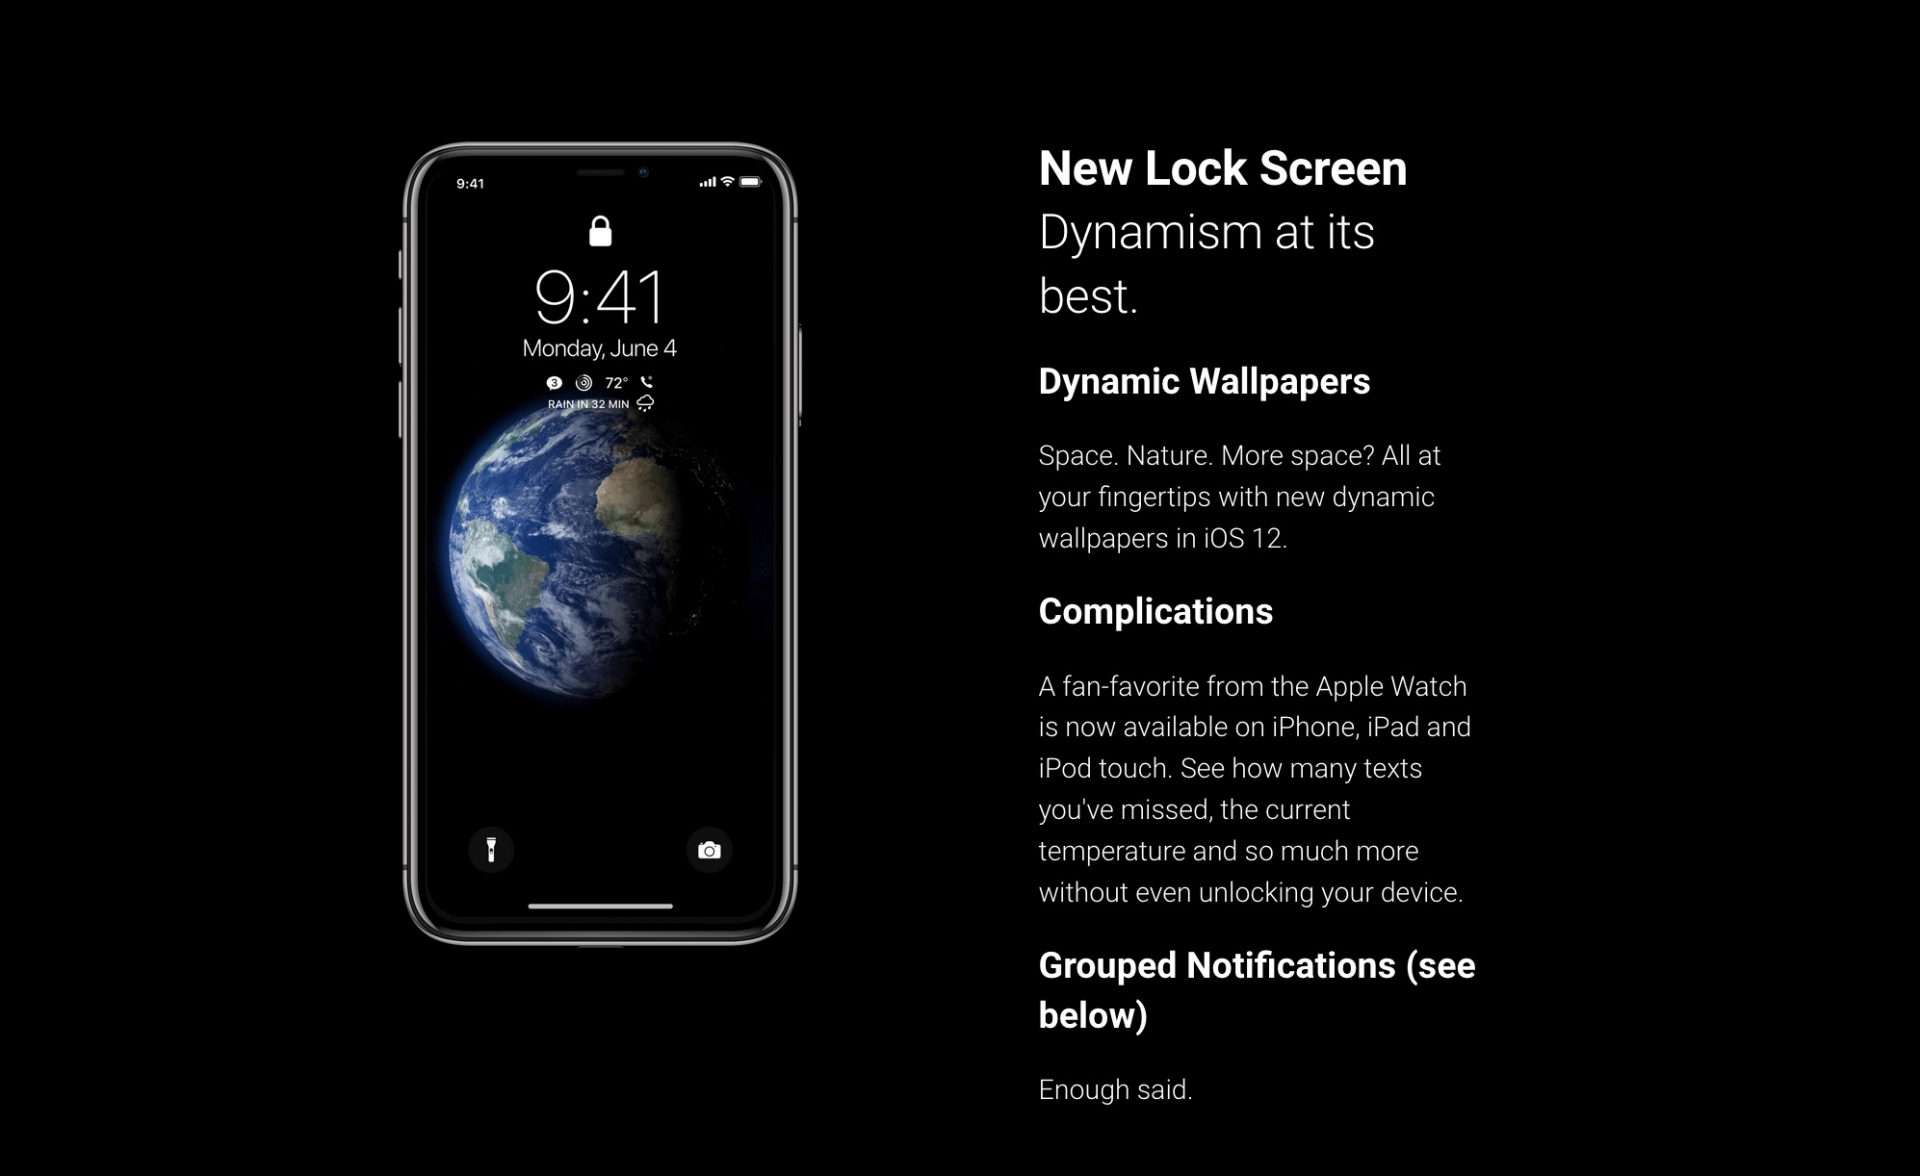 Iupdateos Lock Screen Apple Watch